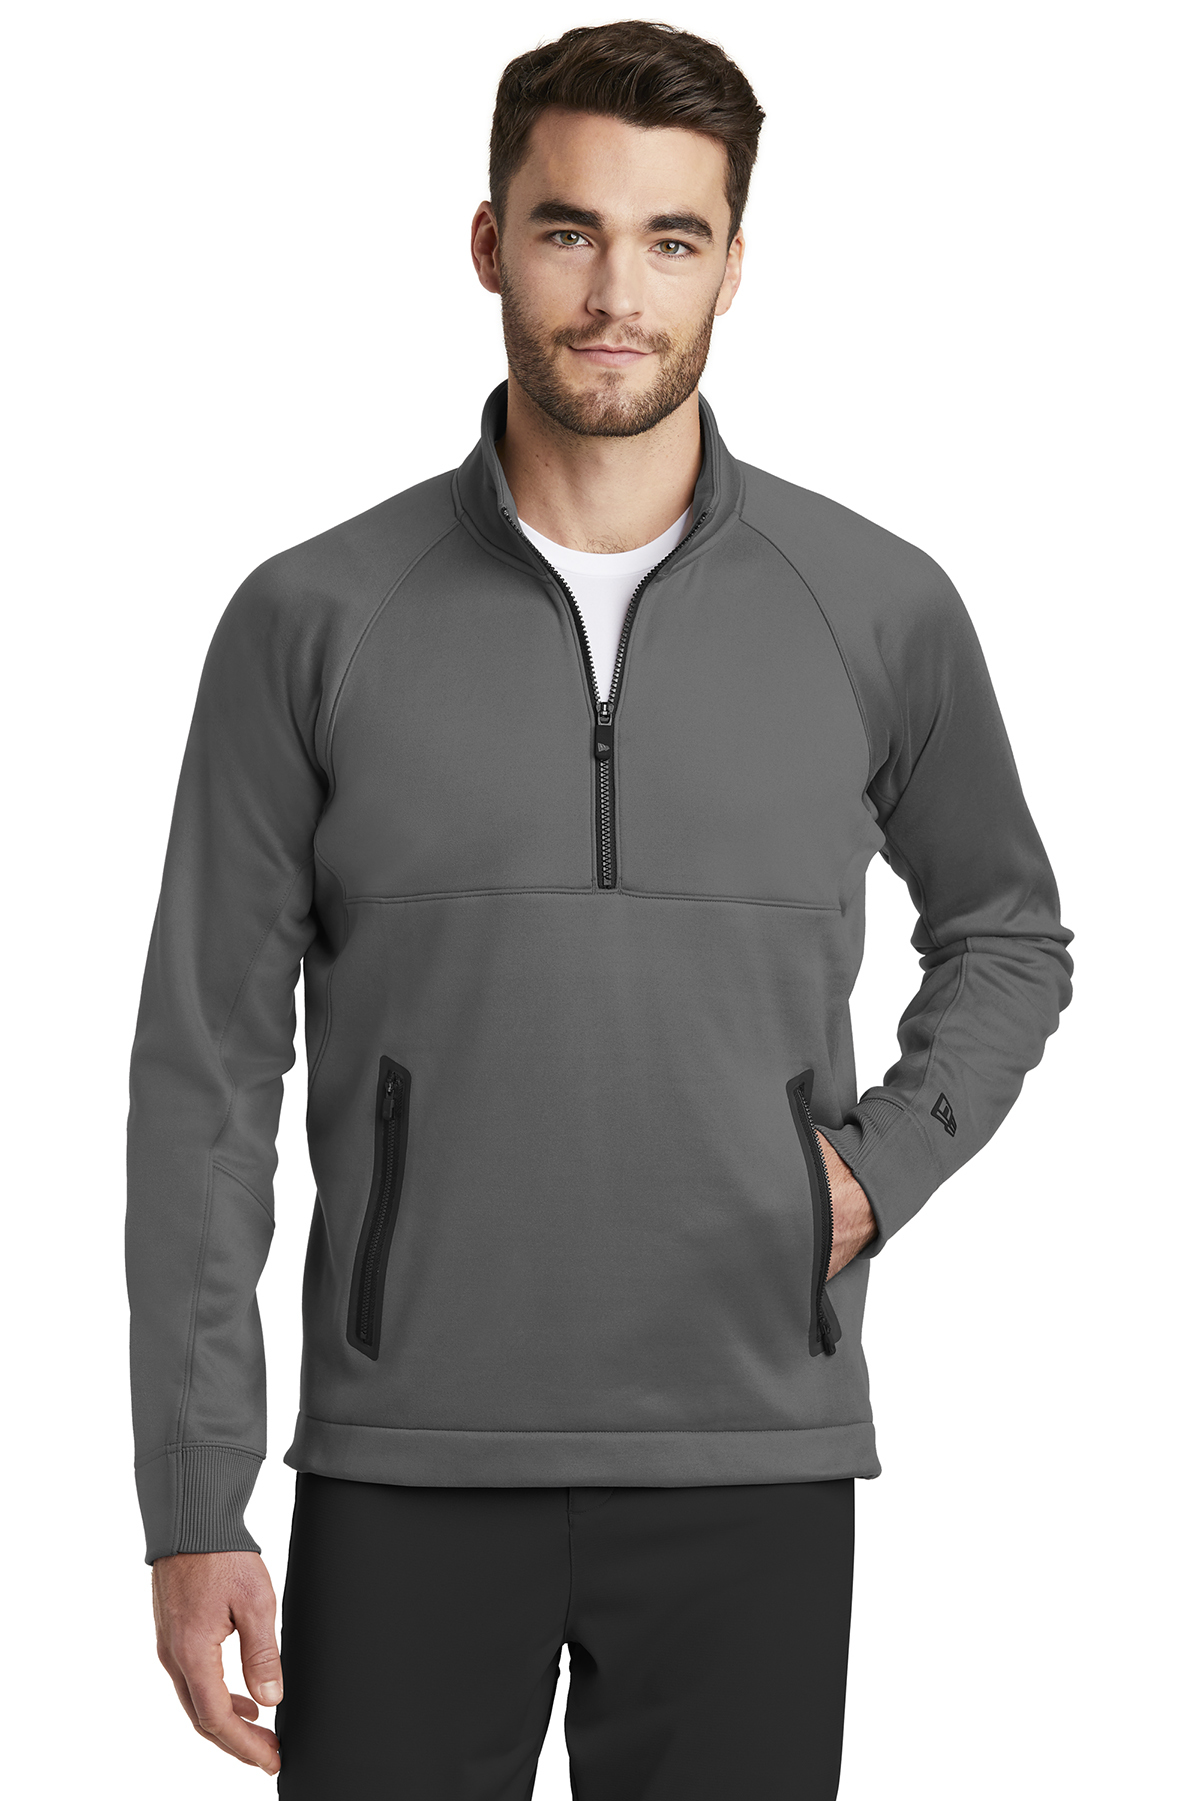 New Era NEA523 - Men's Venue Fleece 1/4-Zip Pullover